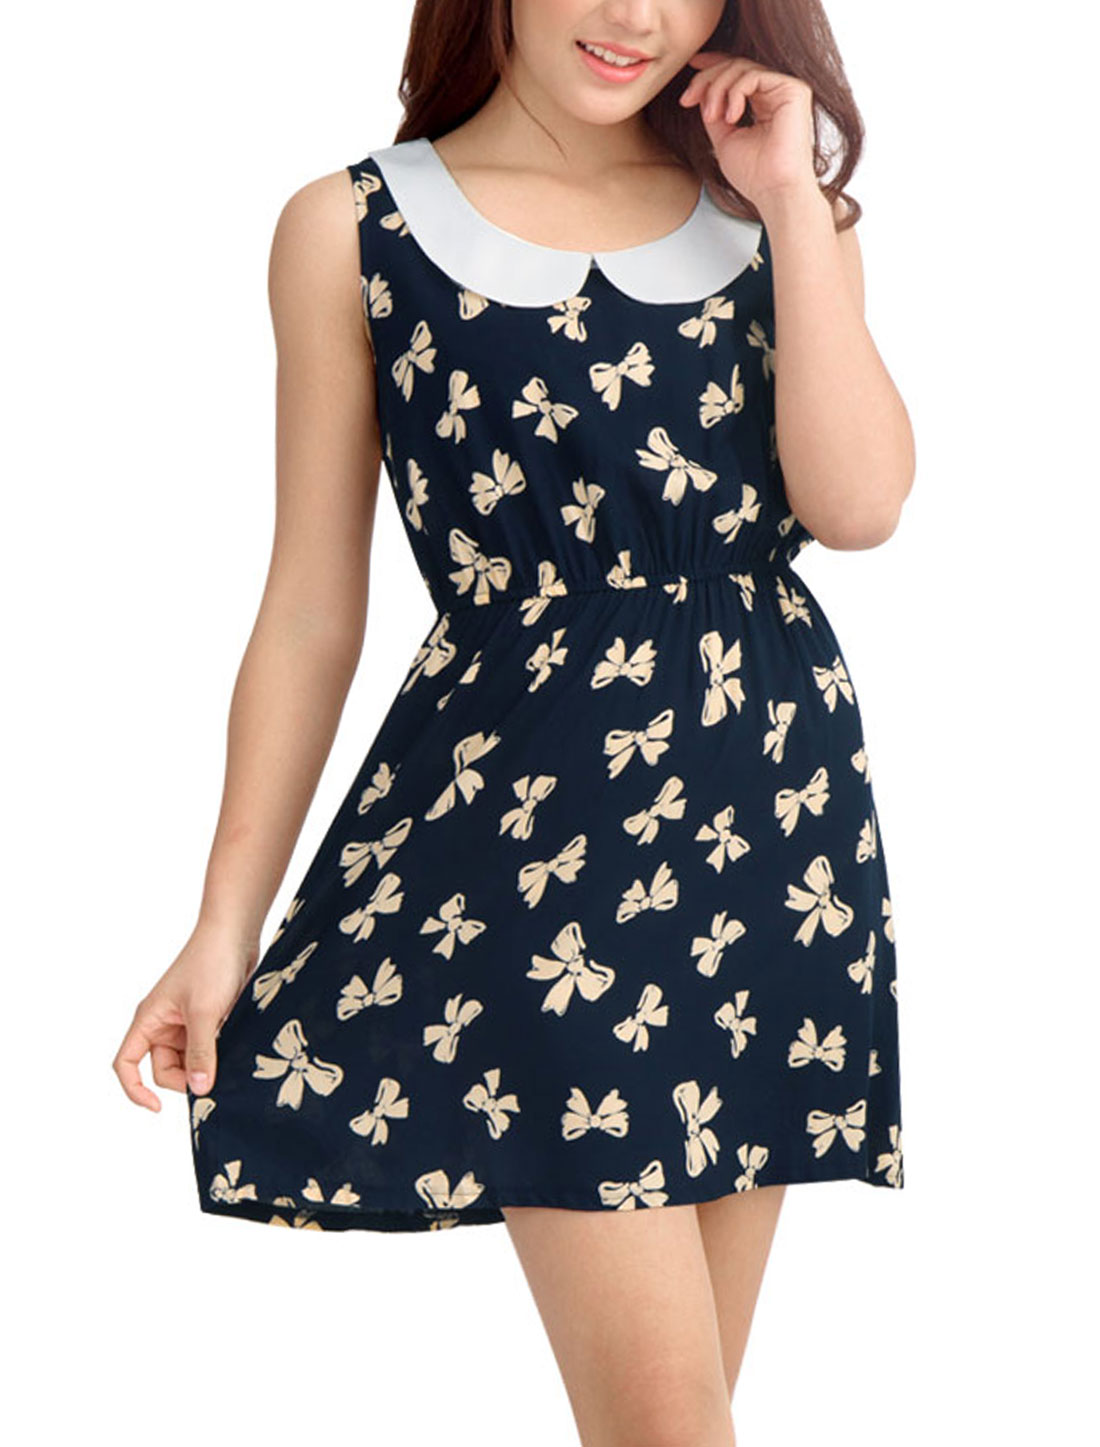 Women Elastic Waist Peter Pan Collar Sweet Tank Dress Dark Blue XL